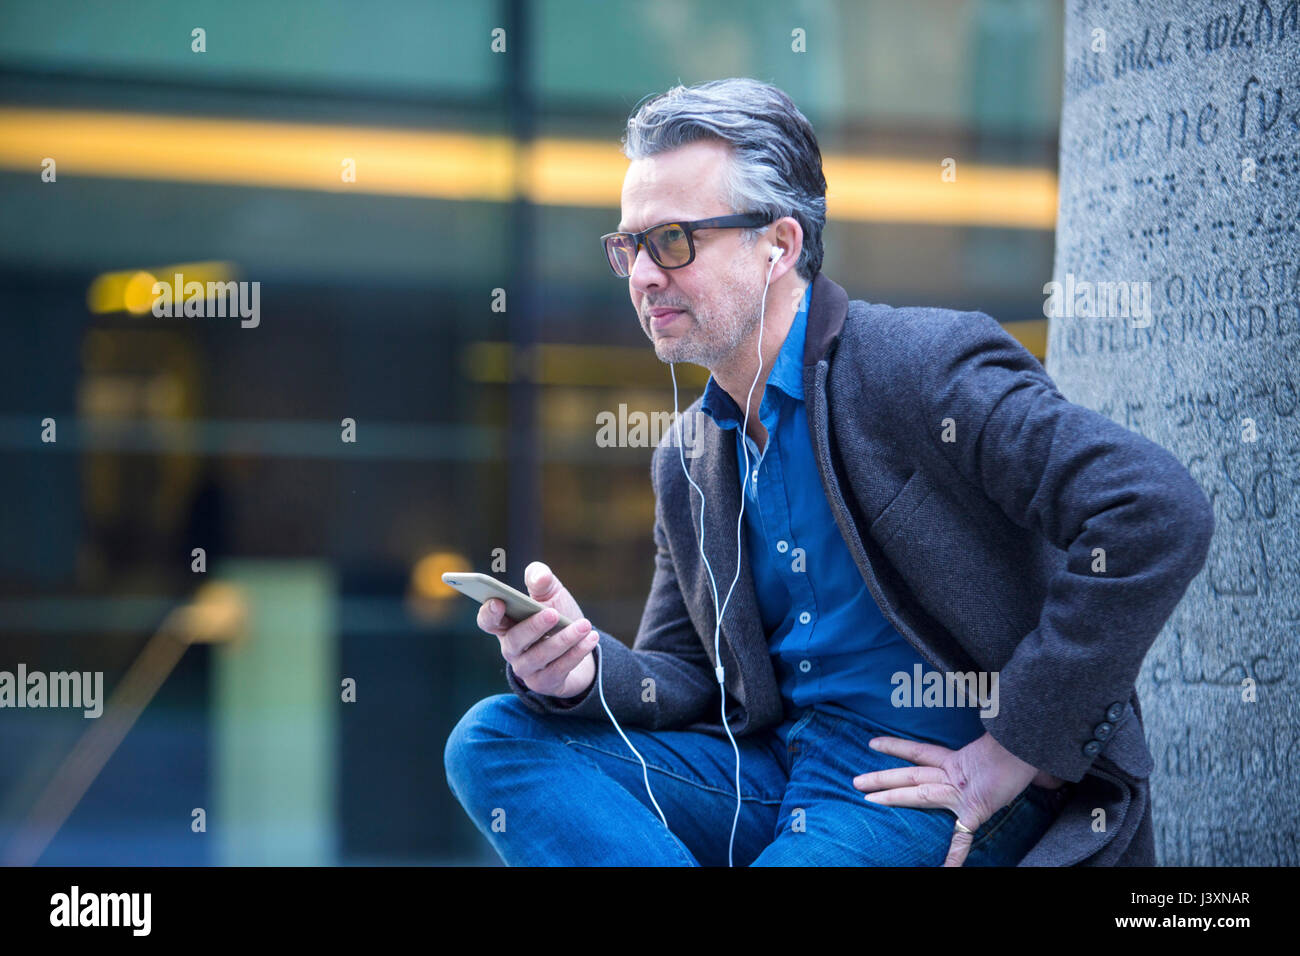 Man with smartphone and earbuds sitting outdoors - Stock Image